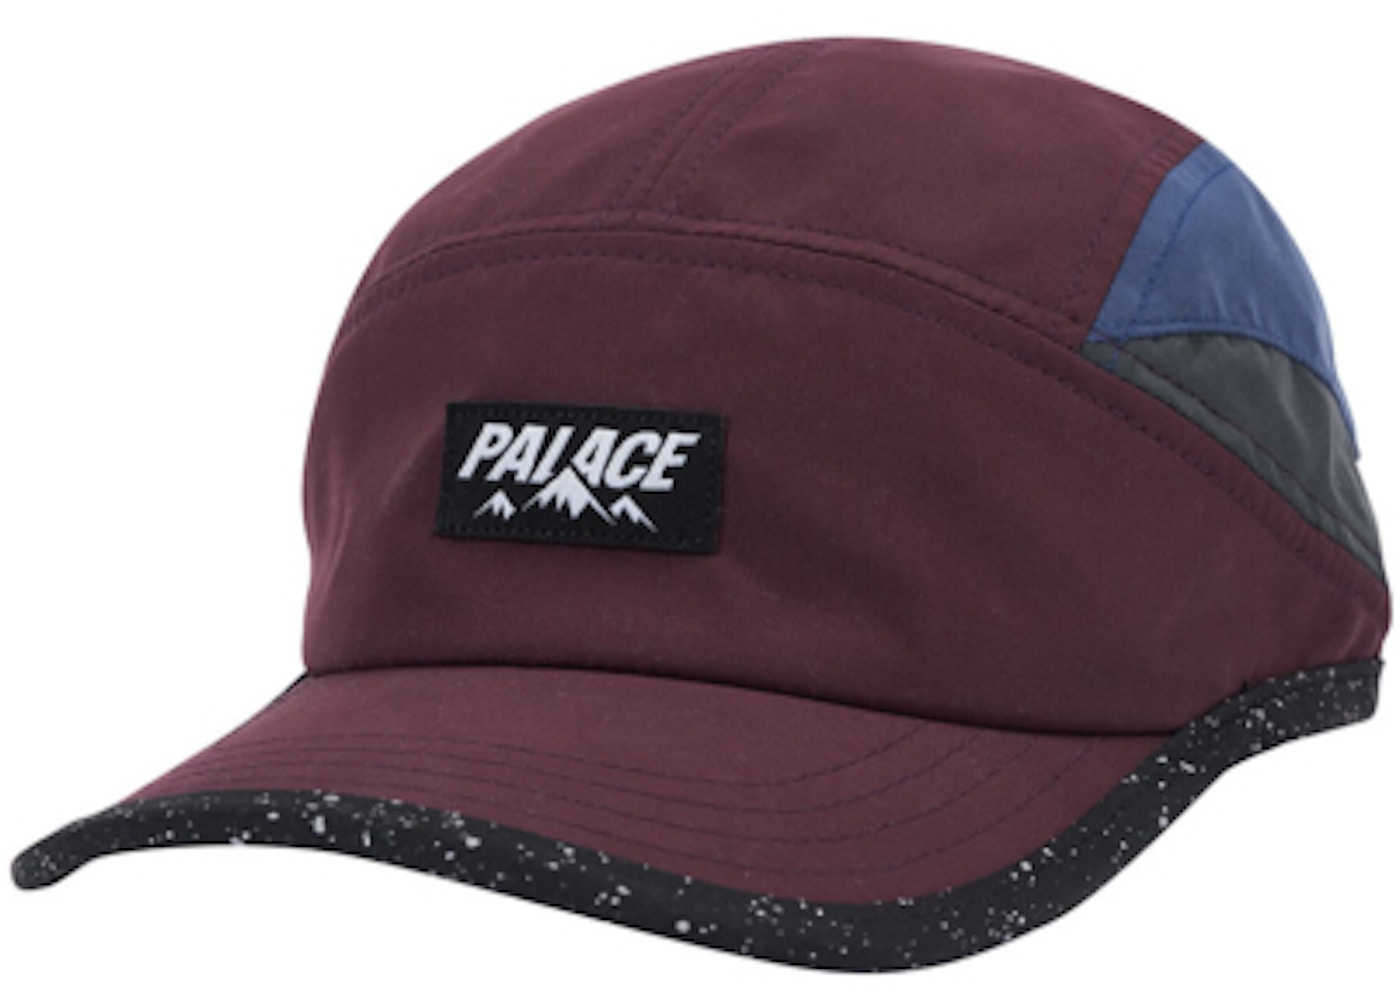 Palace Outdoor Shell Running Hat Purple Blue Grey - Spring 2018 b2e2525753a